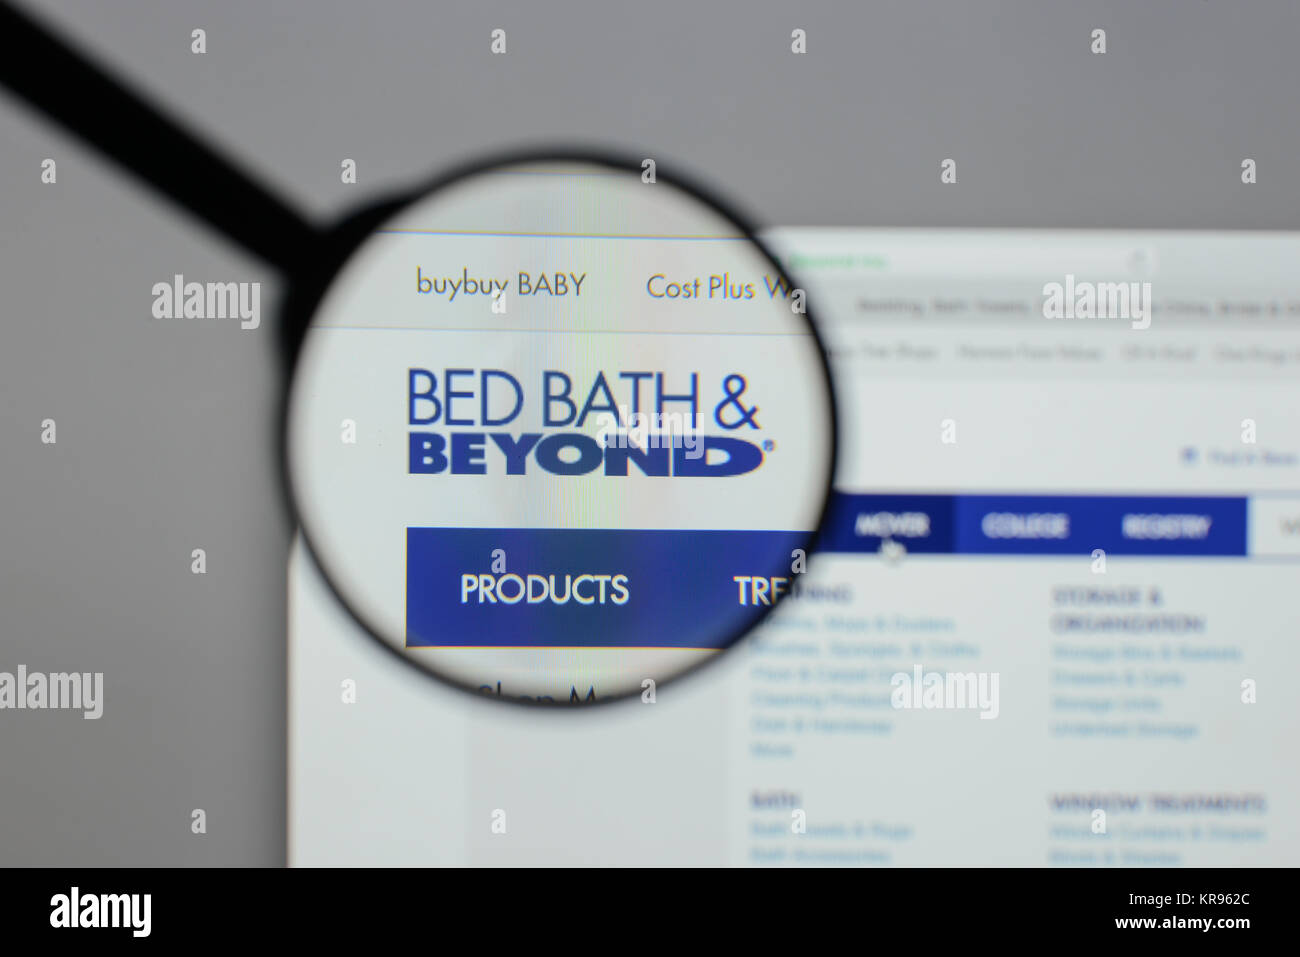 Bed Bath And Beyond Stock Photos Amp Bed Bath And Beyond